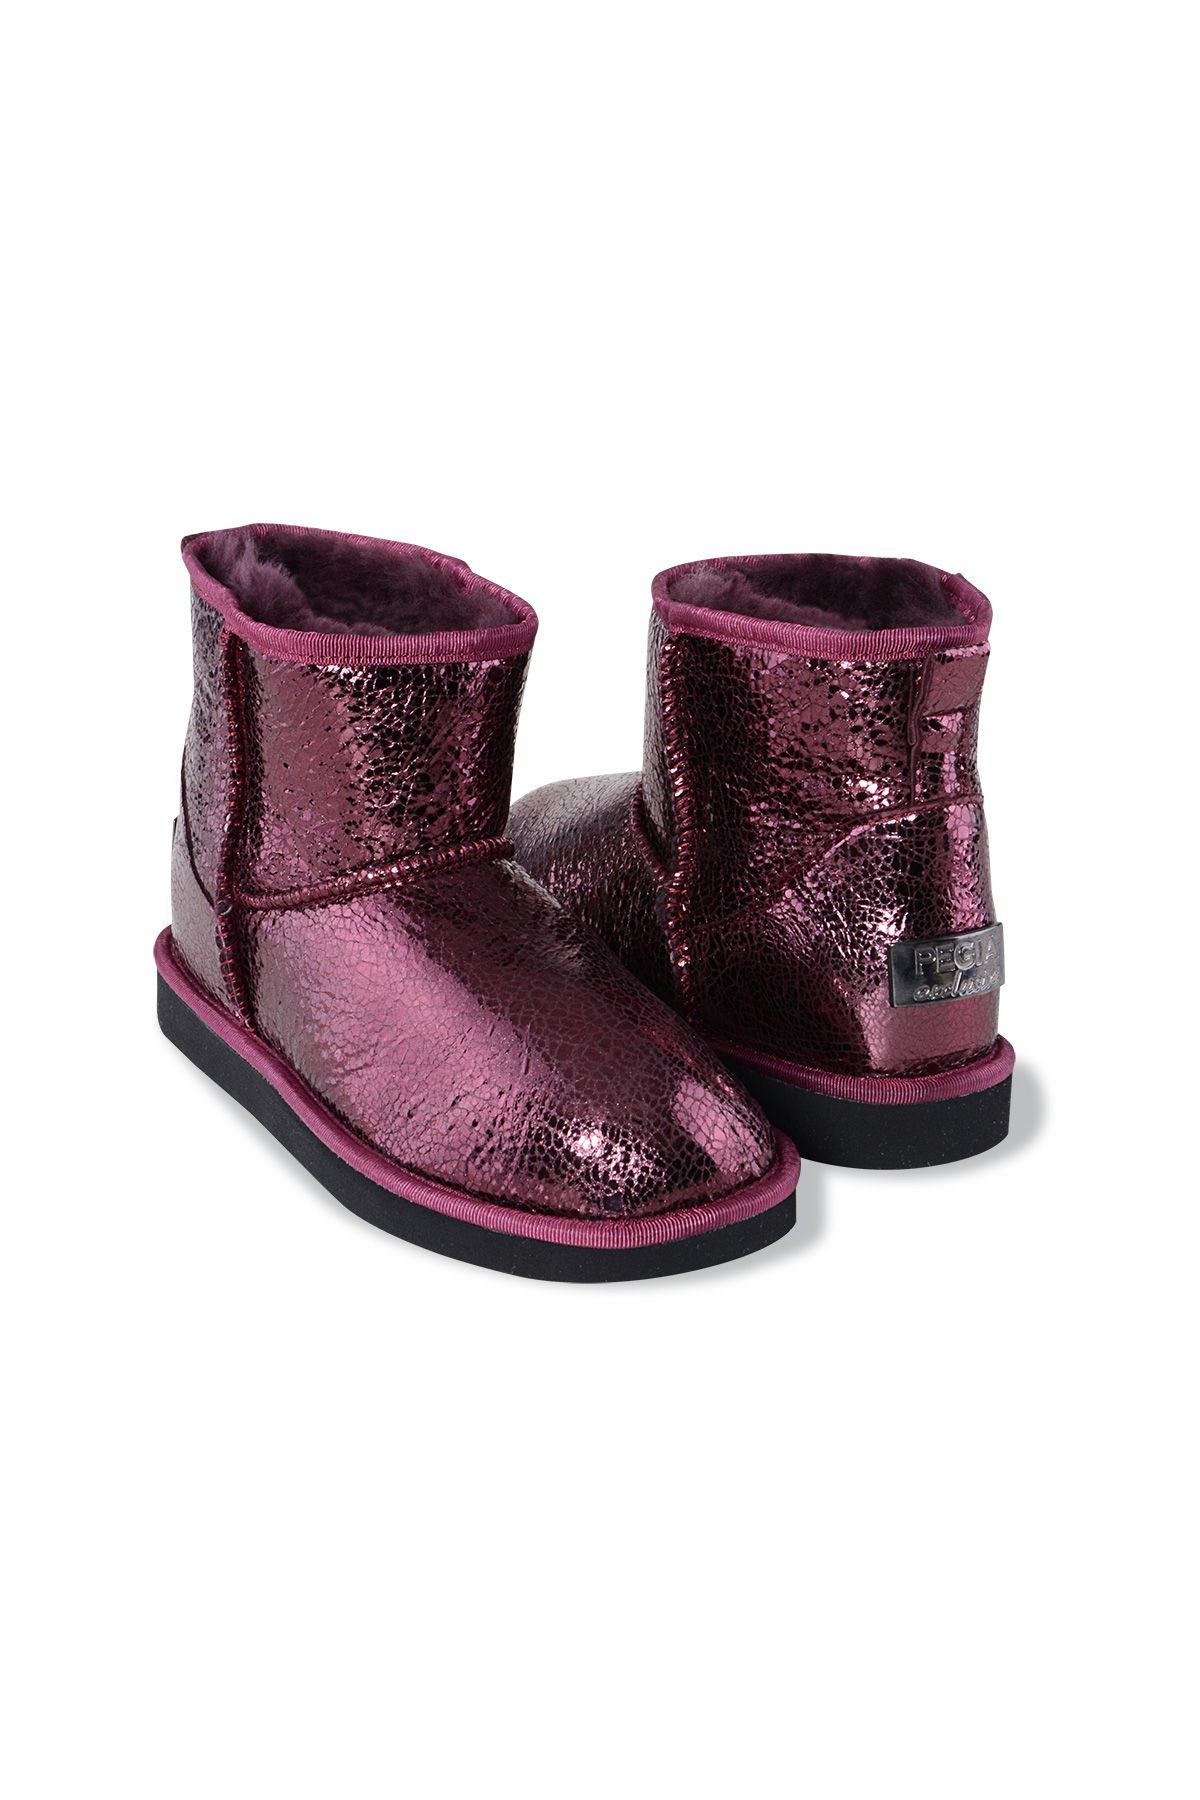 Pegia Shearling Women's Boots With A Pattern 191027 Claret red